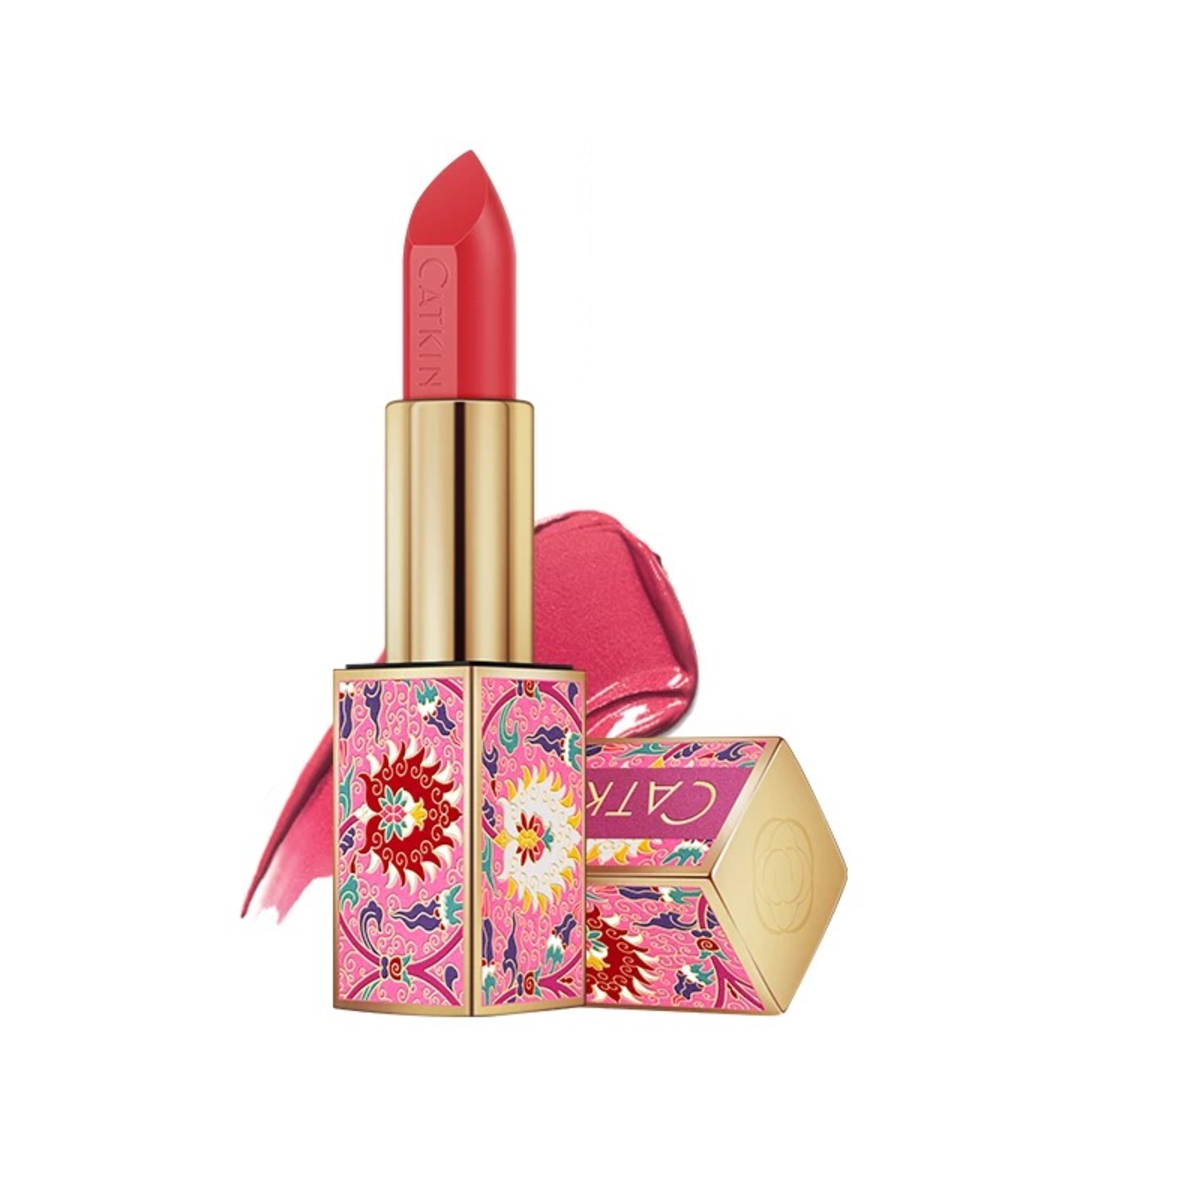 CATKIN Magnet Sheer Lipstick (Limited Edition) - Carmine Rose